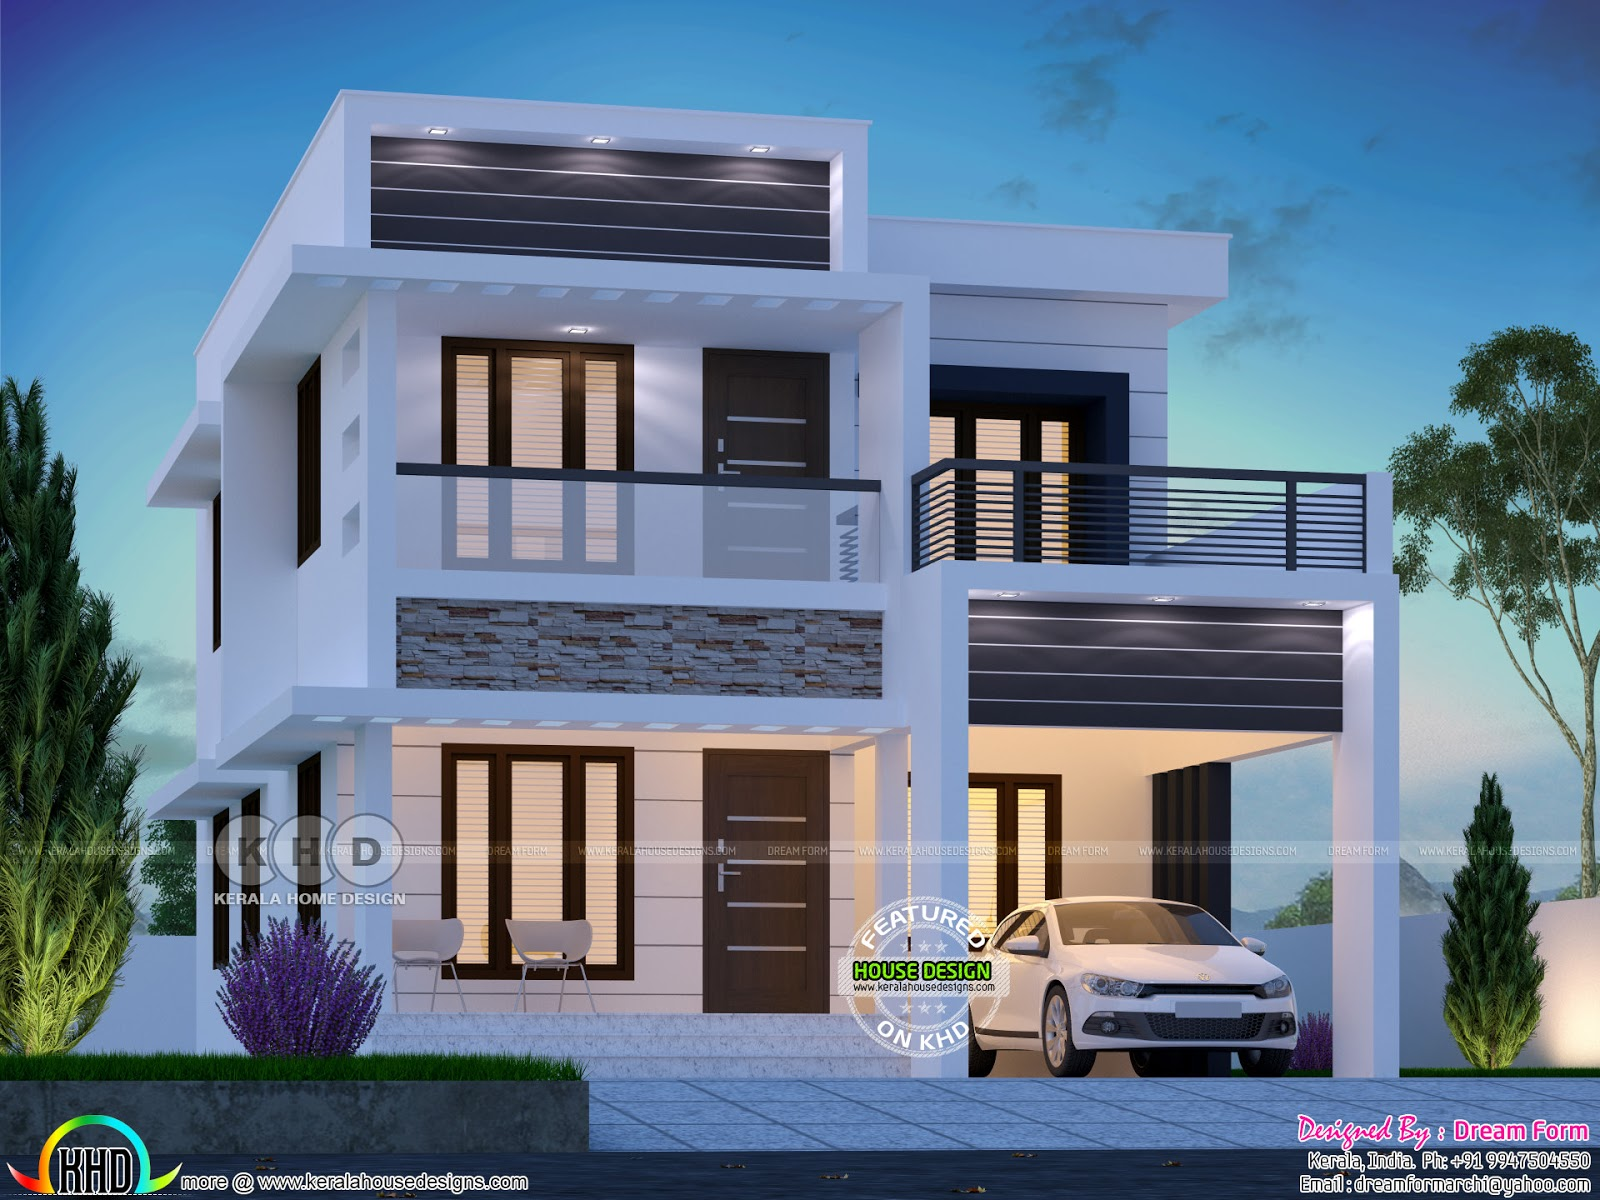 Small But Beautiful Double Storied Home 1701 Sq Ft Kerala Home Design And Floor Plans 8000 Houses